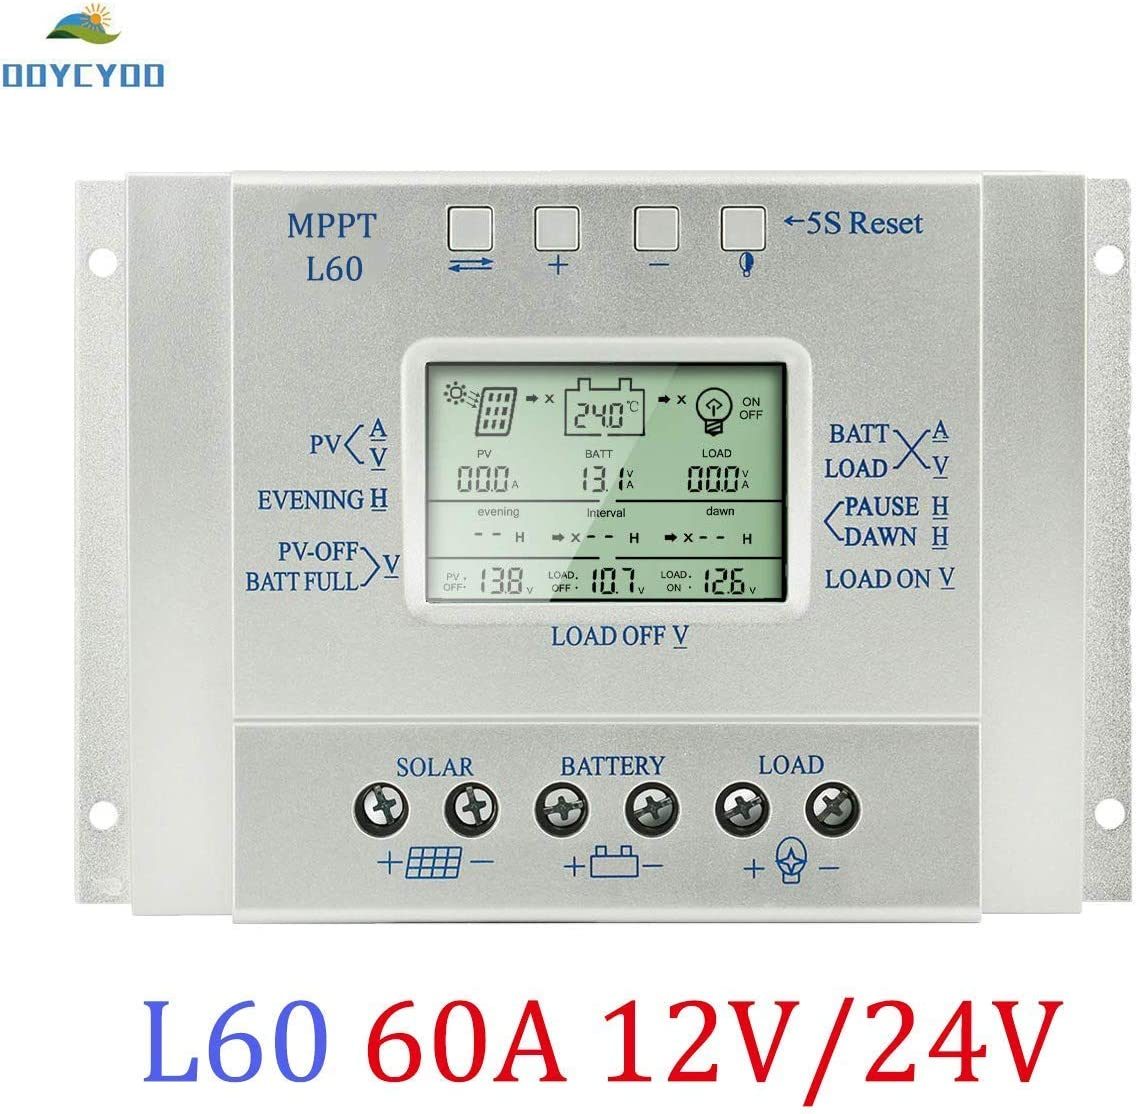 OOYCYOO 60A Solar Charge Controller 60 amp Solar Panel Battery Regulator 12V 24V with LCD Display,USB 5V 1500mA Output L60A